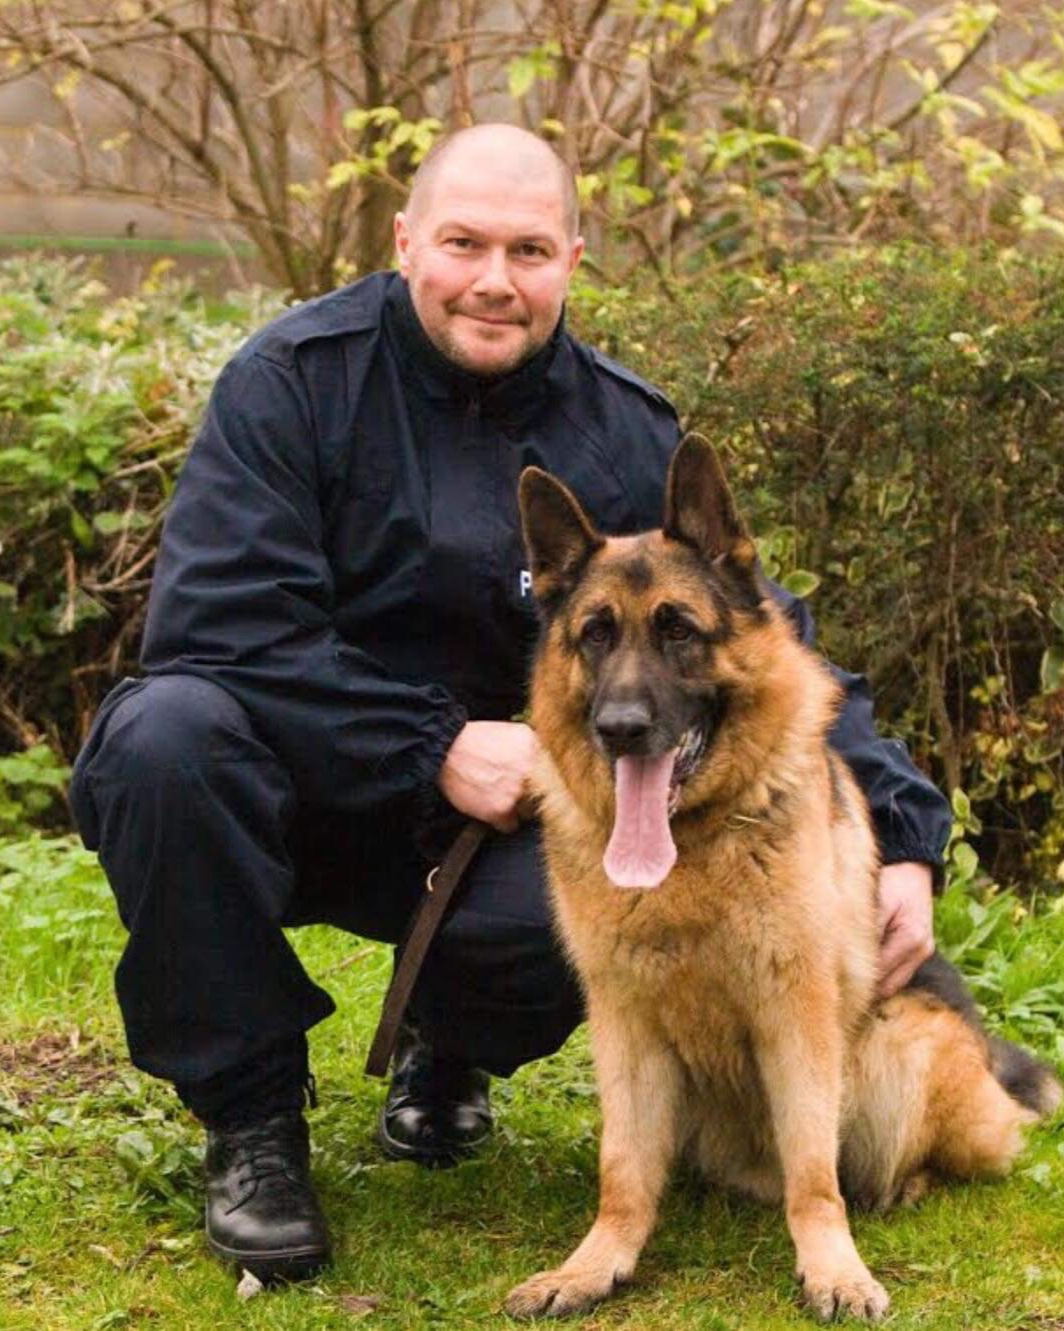 """Paul Wood - Trustee - PC Paul Wood has served in the British Transport Police dog section for 22 years. During that time he has worked 3 German Shepherds & a Border Collie, Charlie, who was retired at 9 years.He has been involved in the Battersea Dogs Home display at Crufts & appeared in TV series, """"Send in the Dogs"""".Paul has received 2 commendations and a medal for long service. He now works alongside PD Albert & is proud to be a trustee of Railway Dogs Benevolent Fund."""